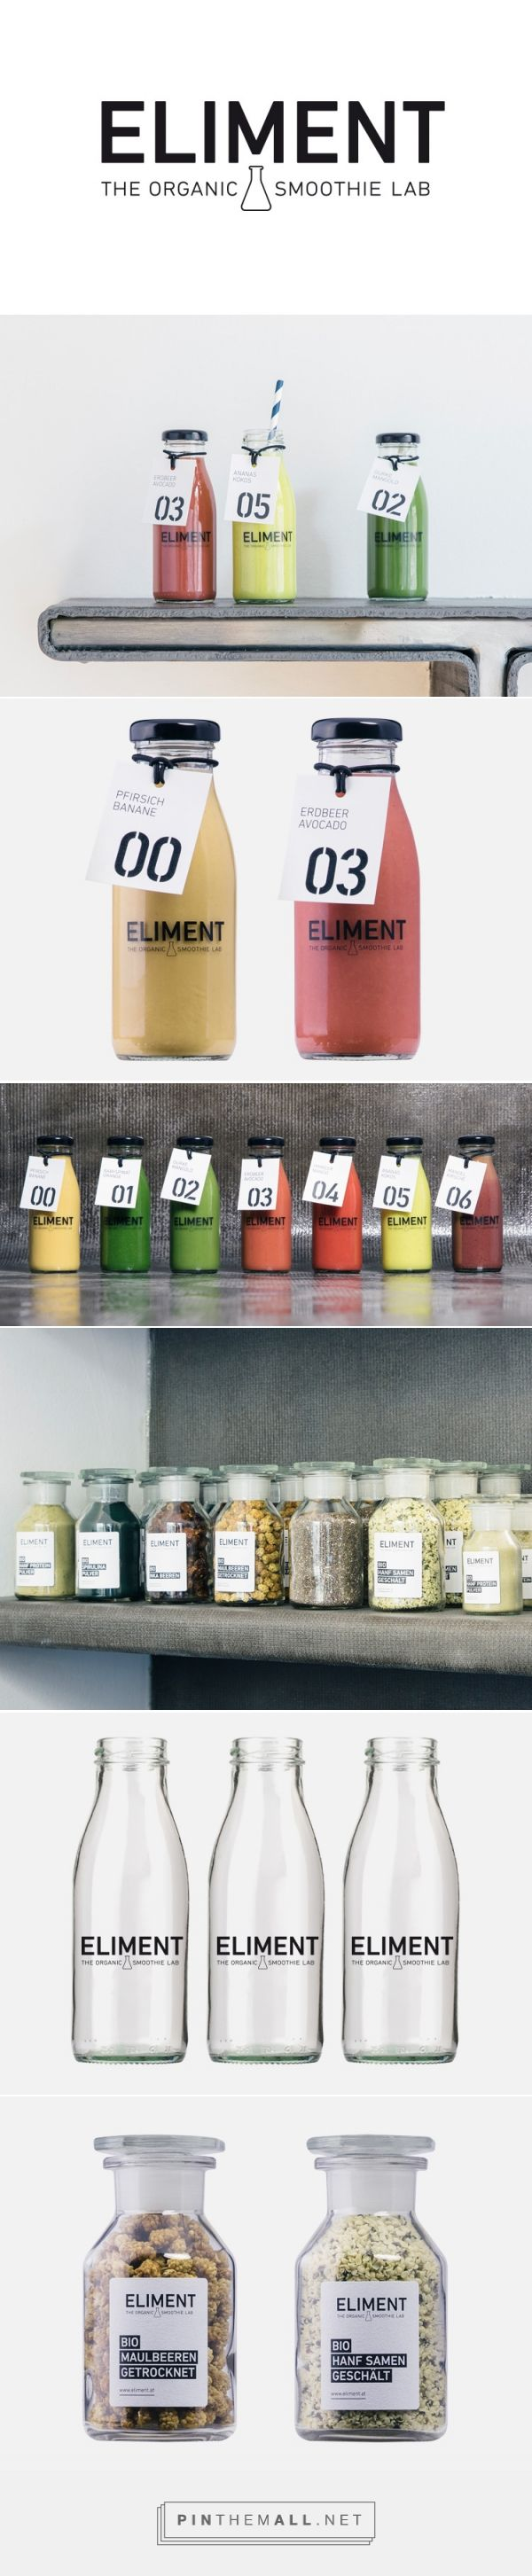 Martin Dvorak, Agentur für Gestaltung Eliment Organic Smoothie Lab curated by Packaging Diva PD. Created your own smoothie in basic packaging by numbers.